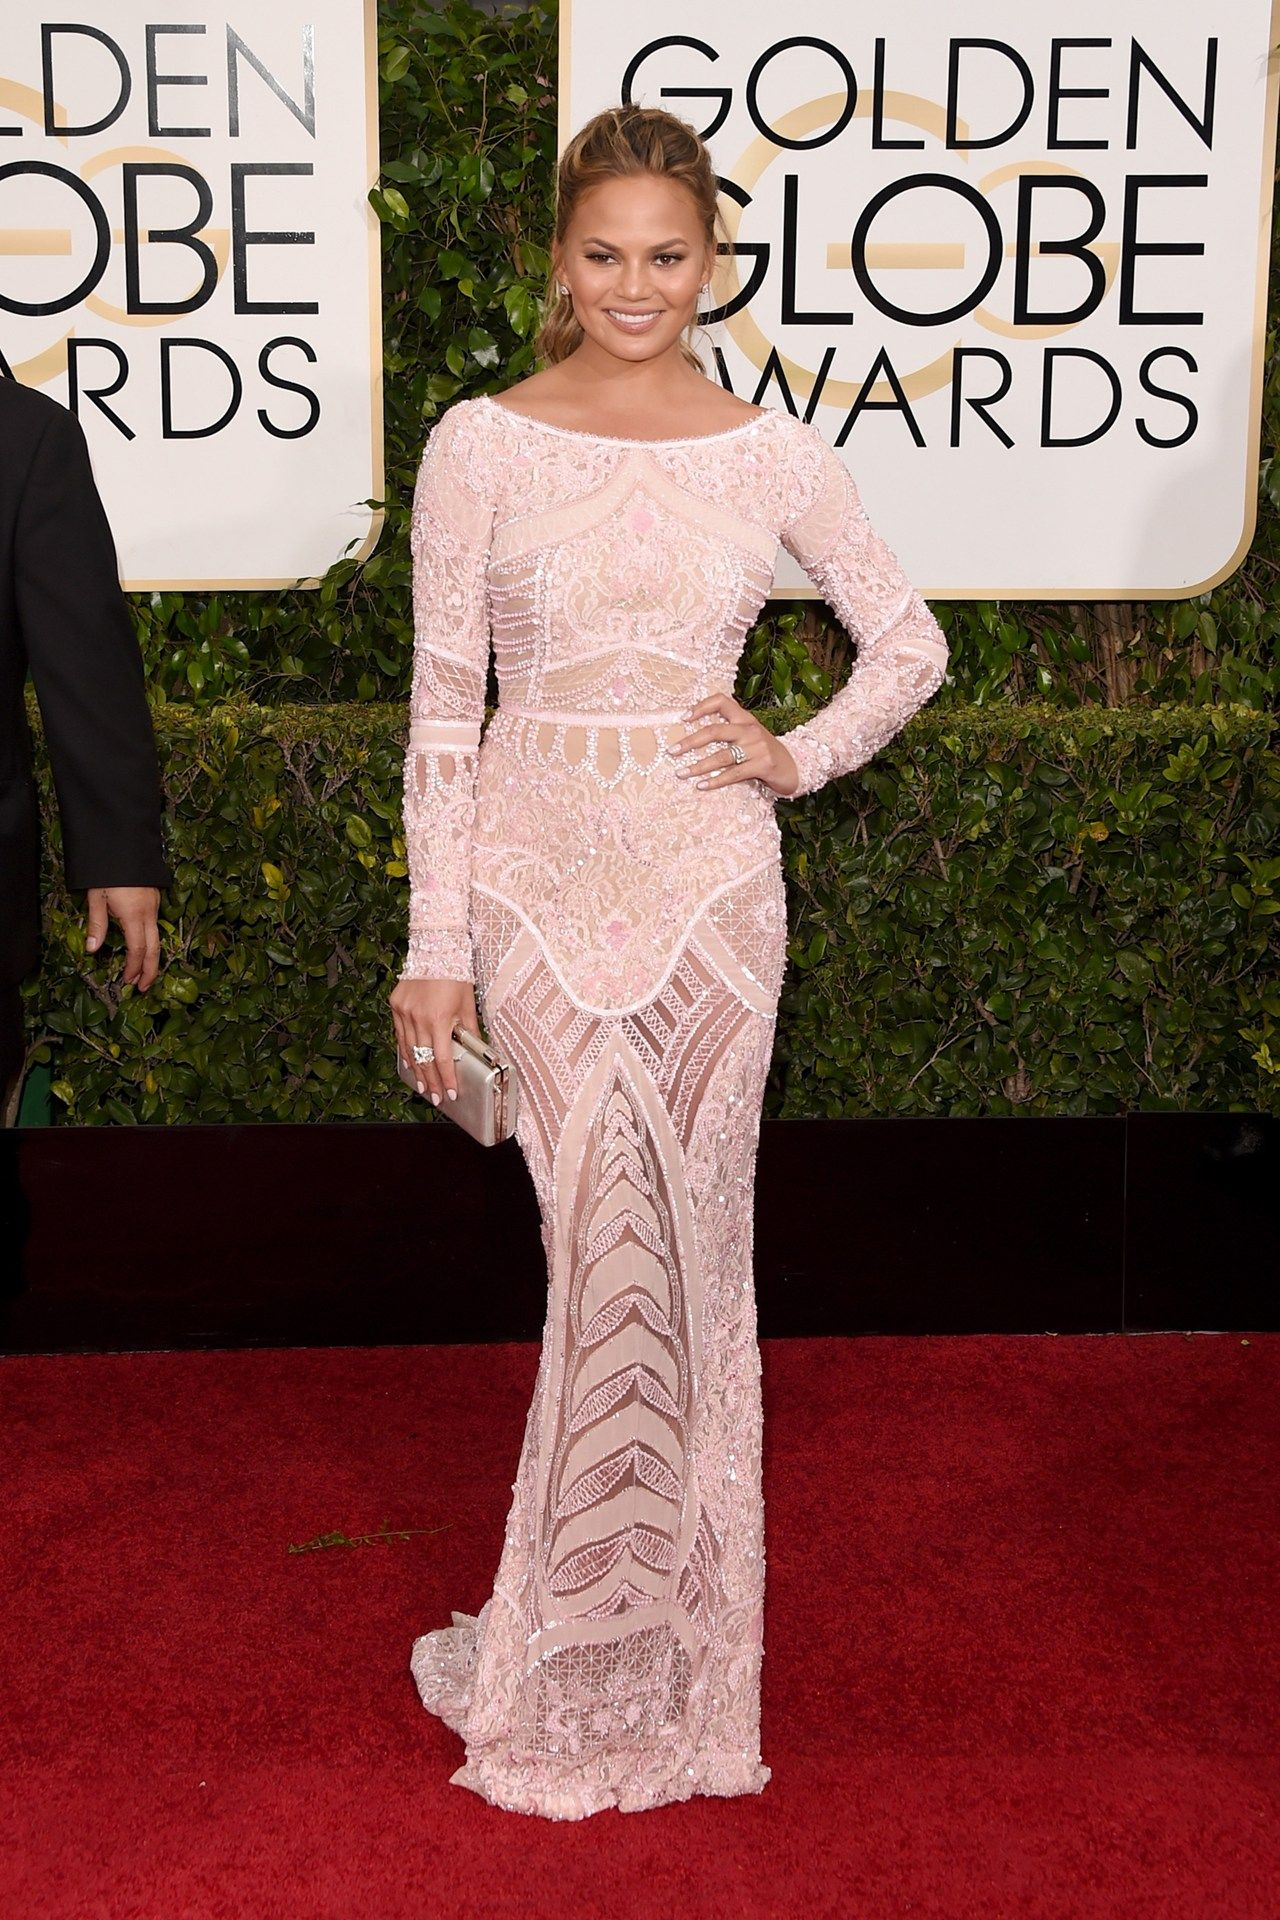 Wedding-worthy dresses from the red carpet: Chrissy Teigen in Zuhair Murad at the Golden Globes 2015